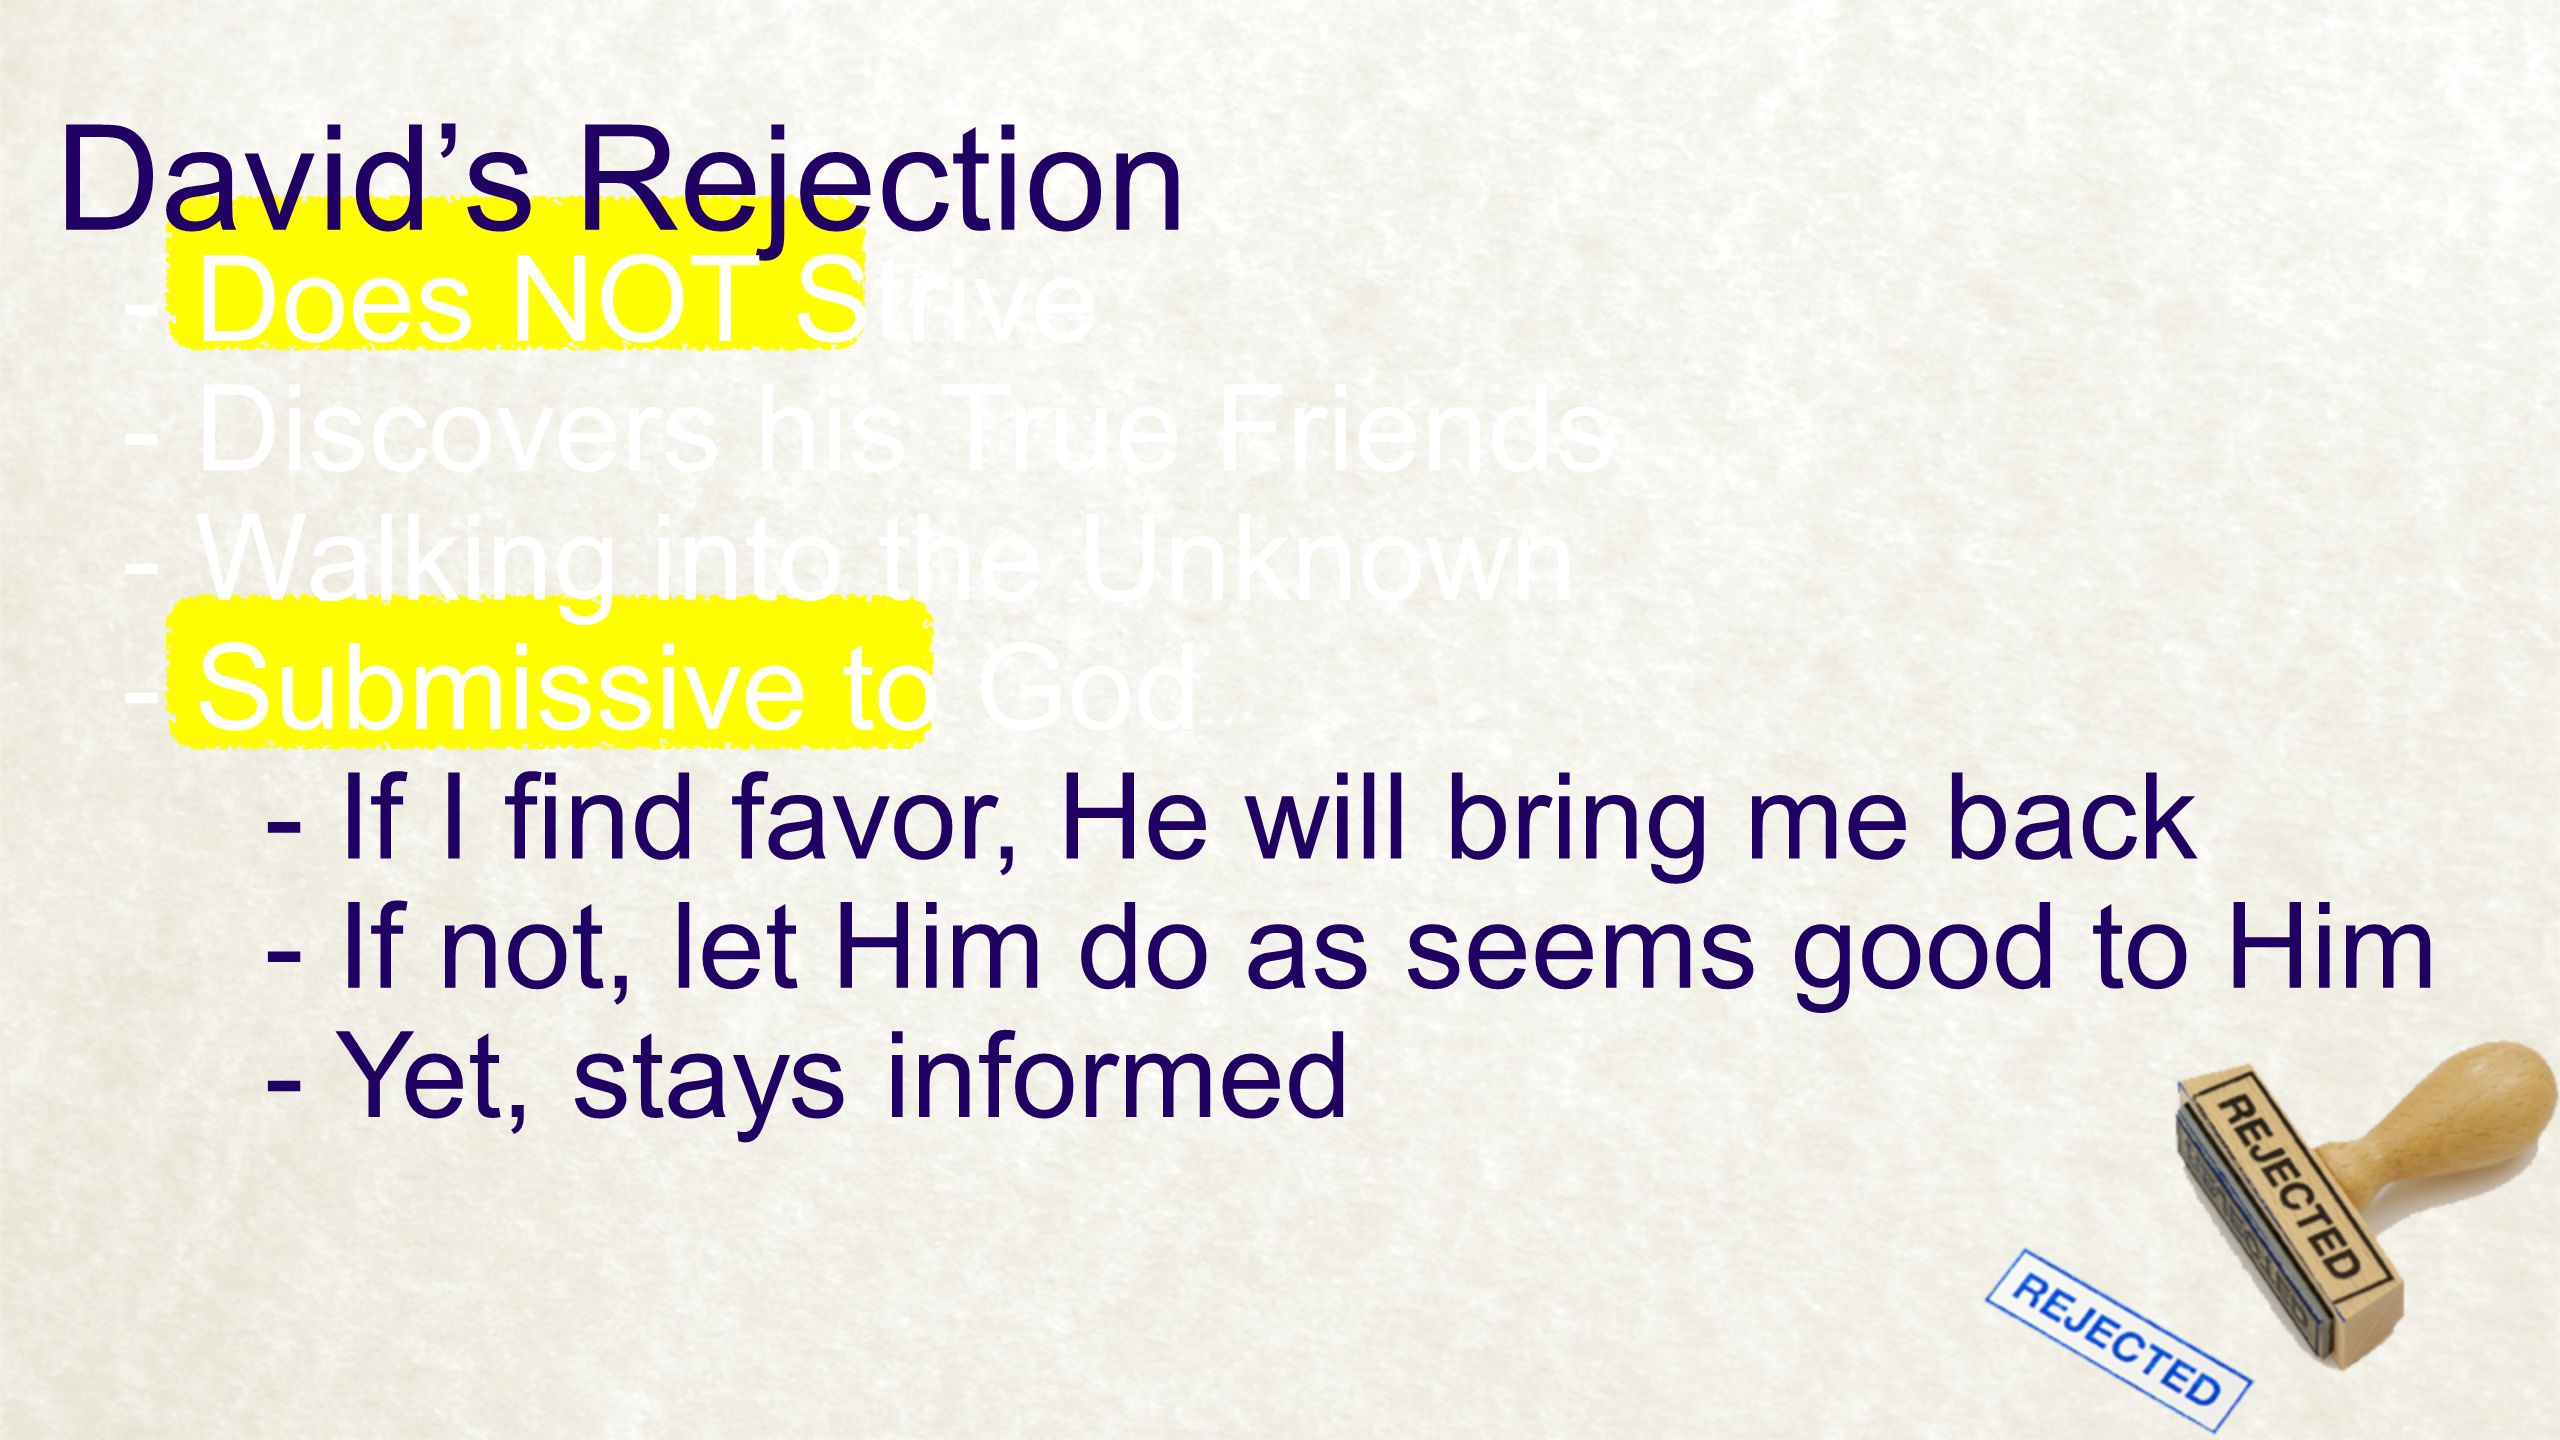 David's Rejection - Does NOT Strive - Discovers his True Friends - Walking into the Unknown - If I find favor, He will bring me back - Submissive to G